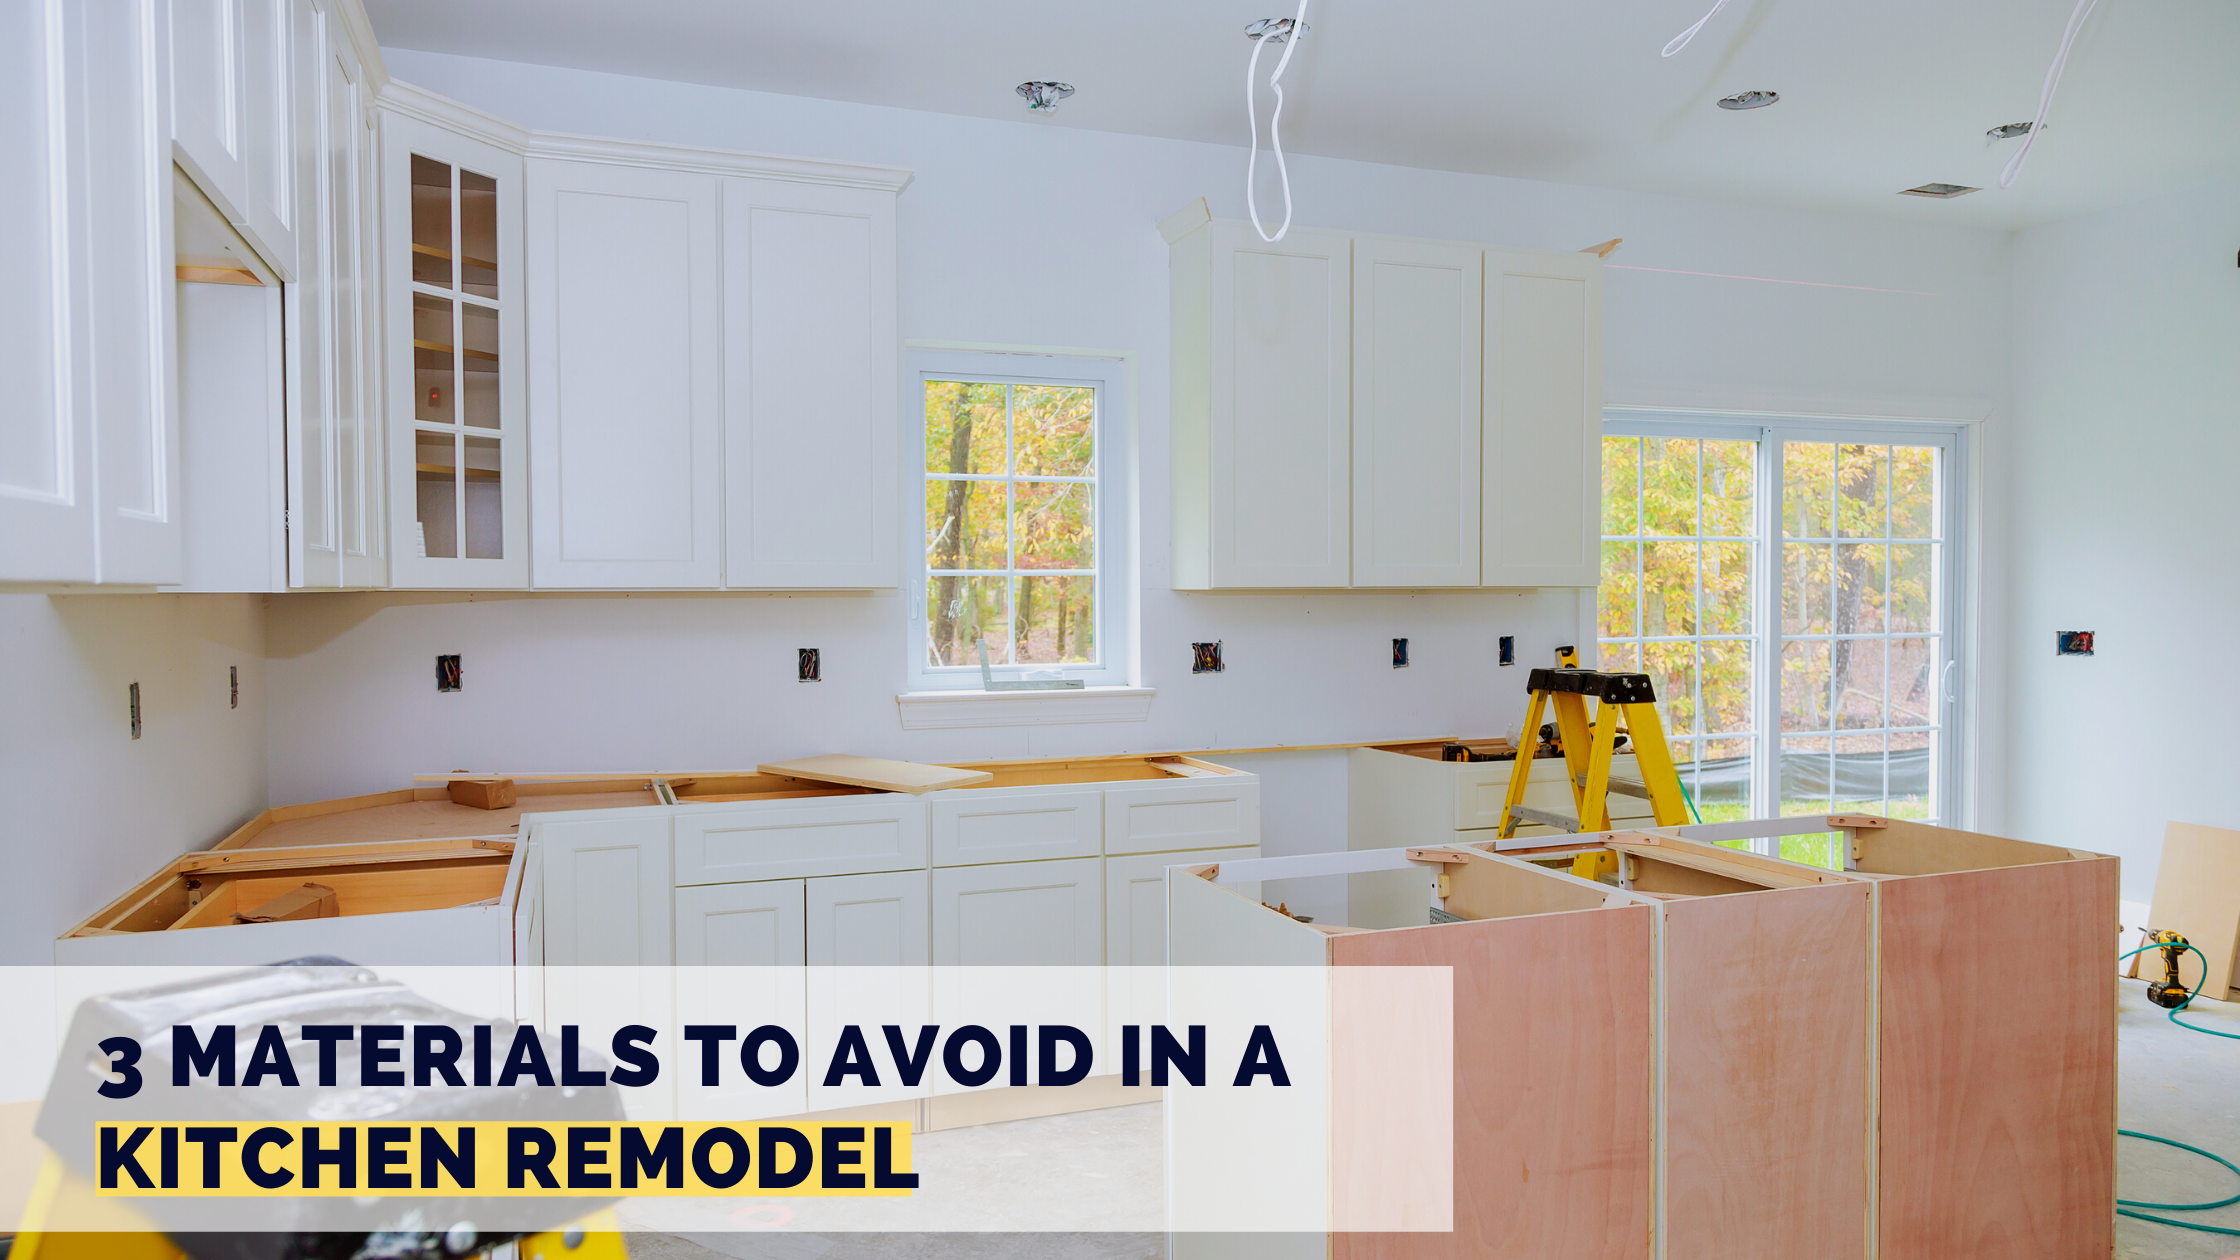 3 Materials to Avoid in a Kitchen Remodel